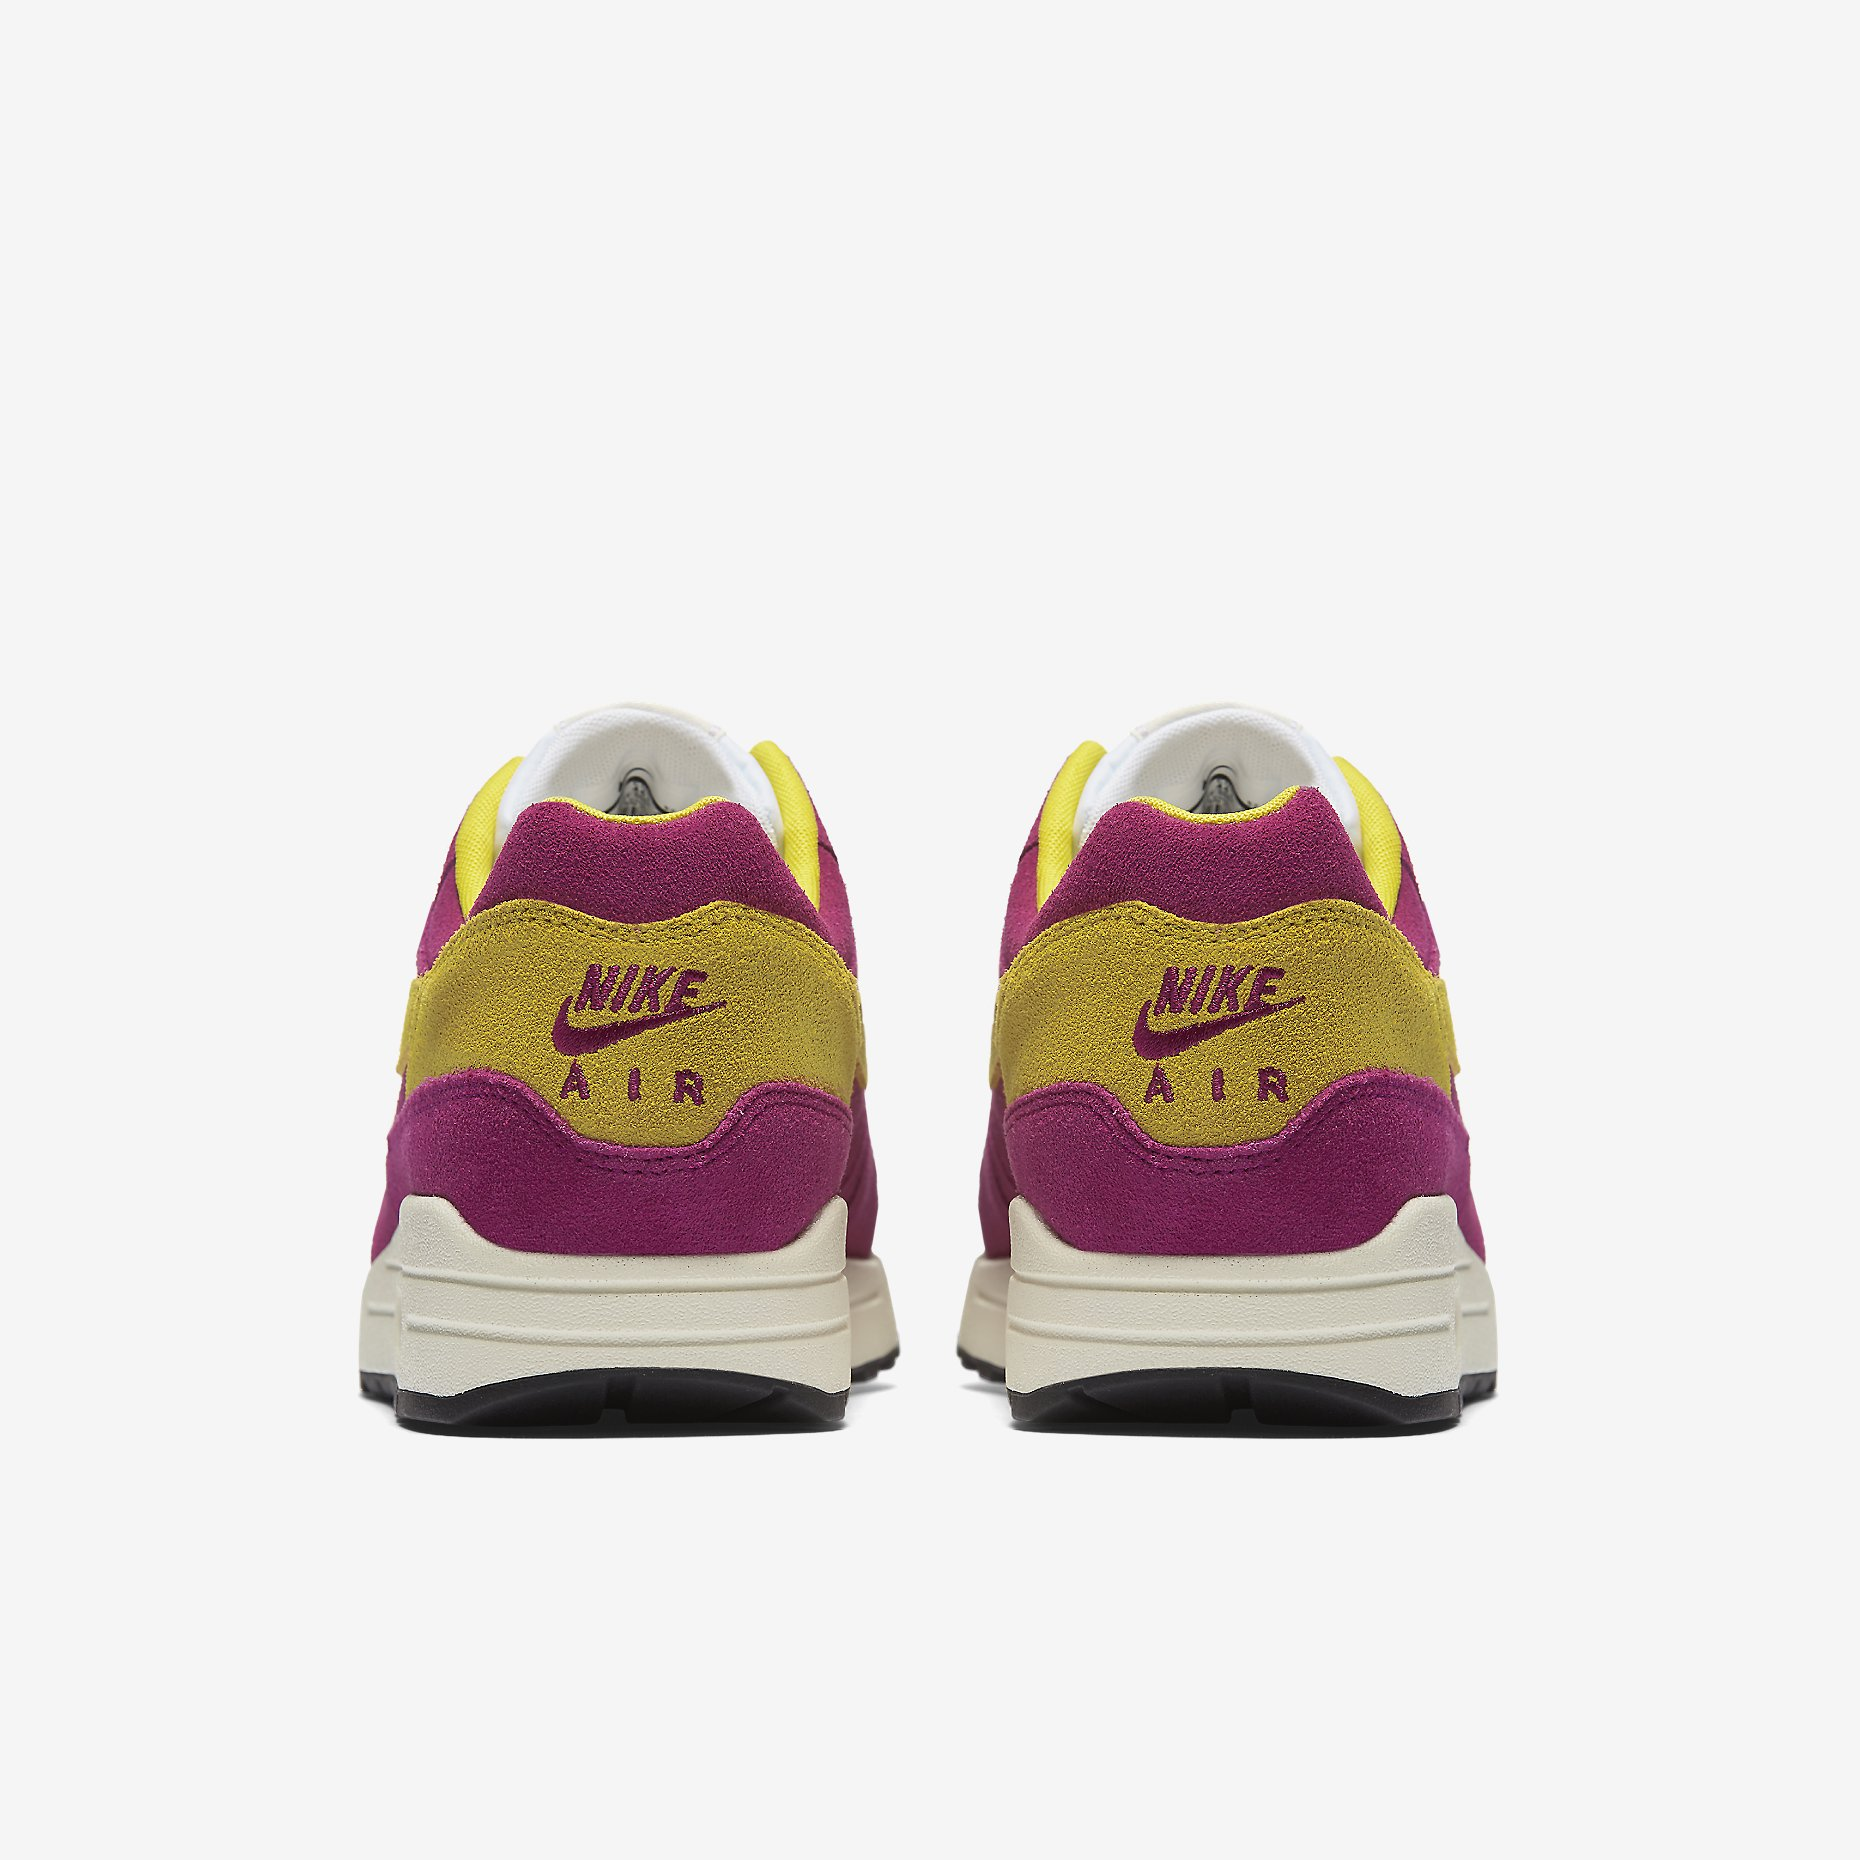 Nike Air Max 1 Dynamic Berry 875844 500 3